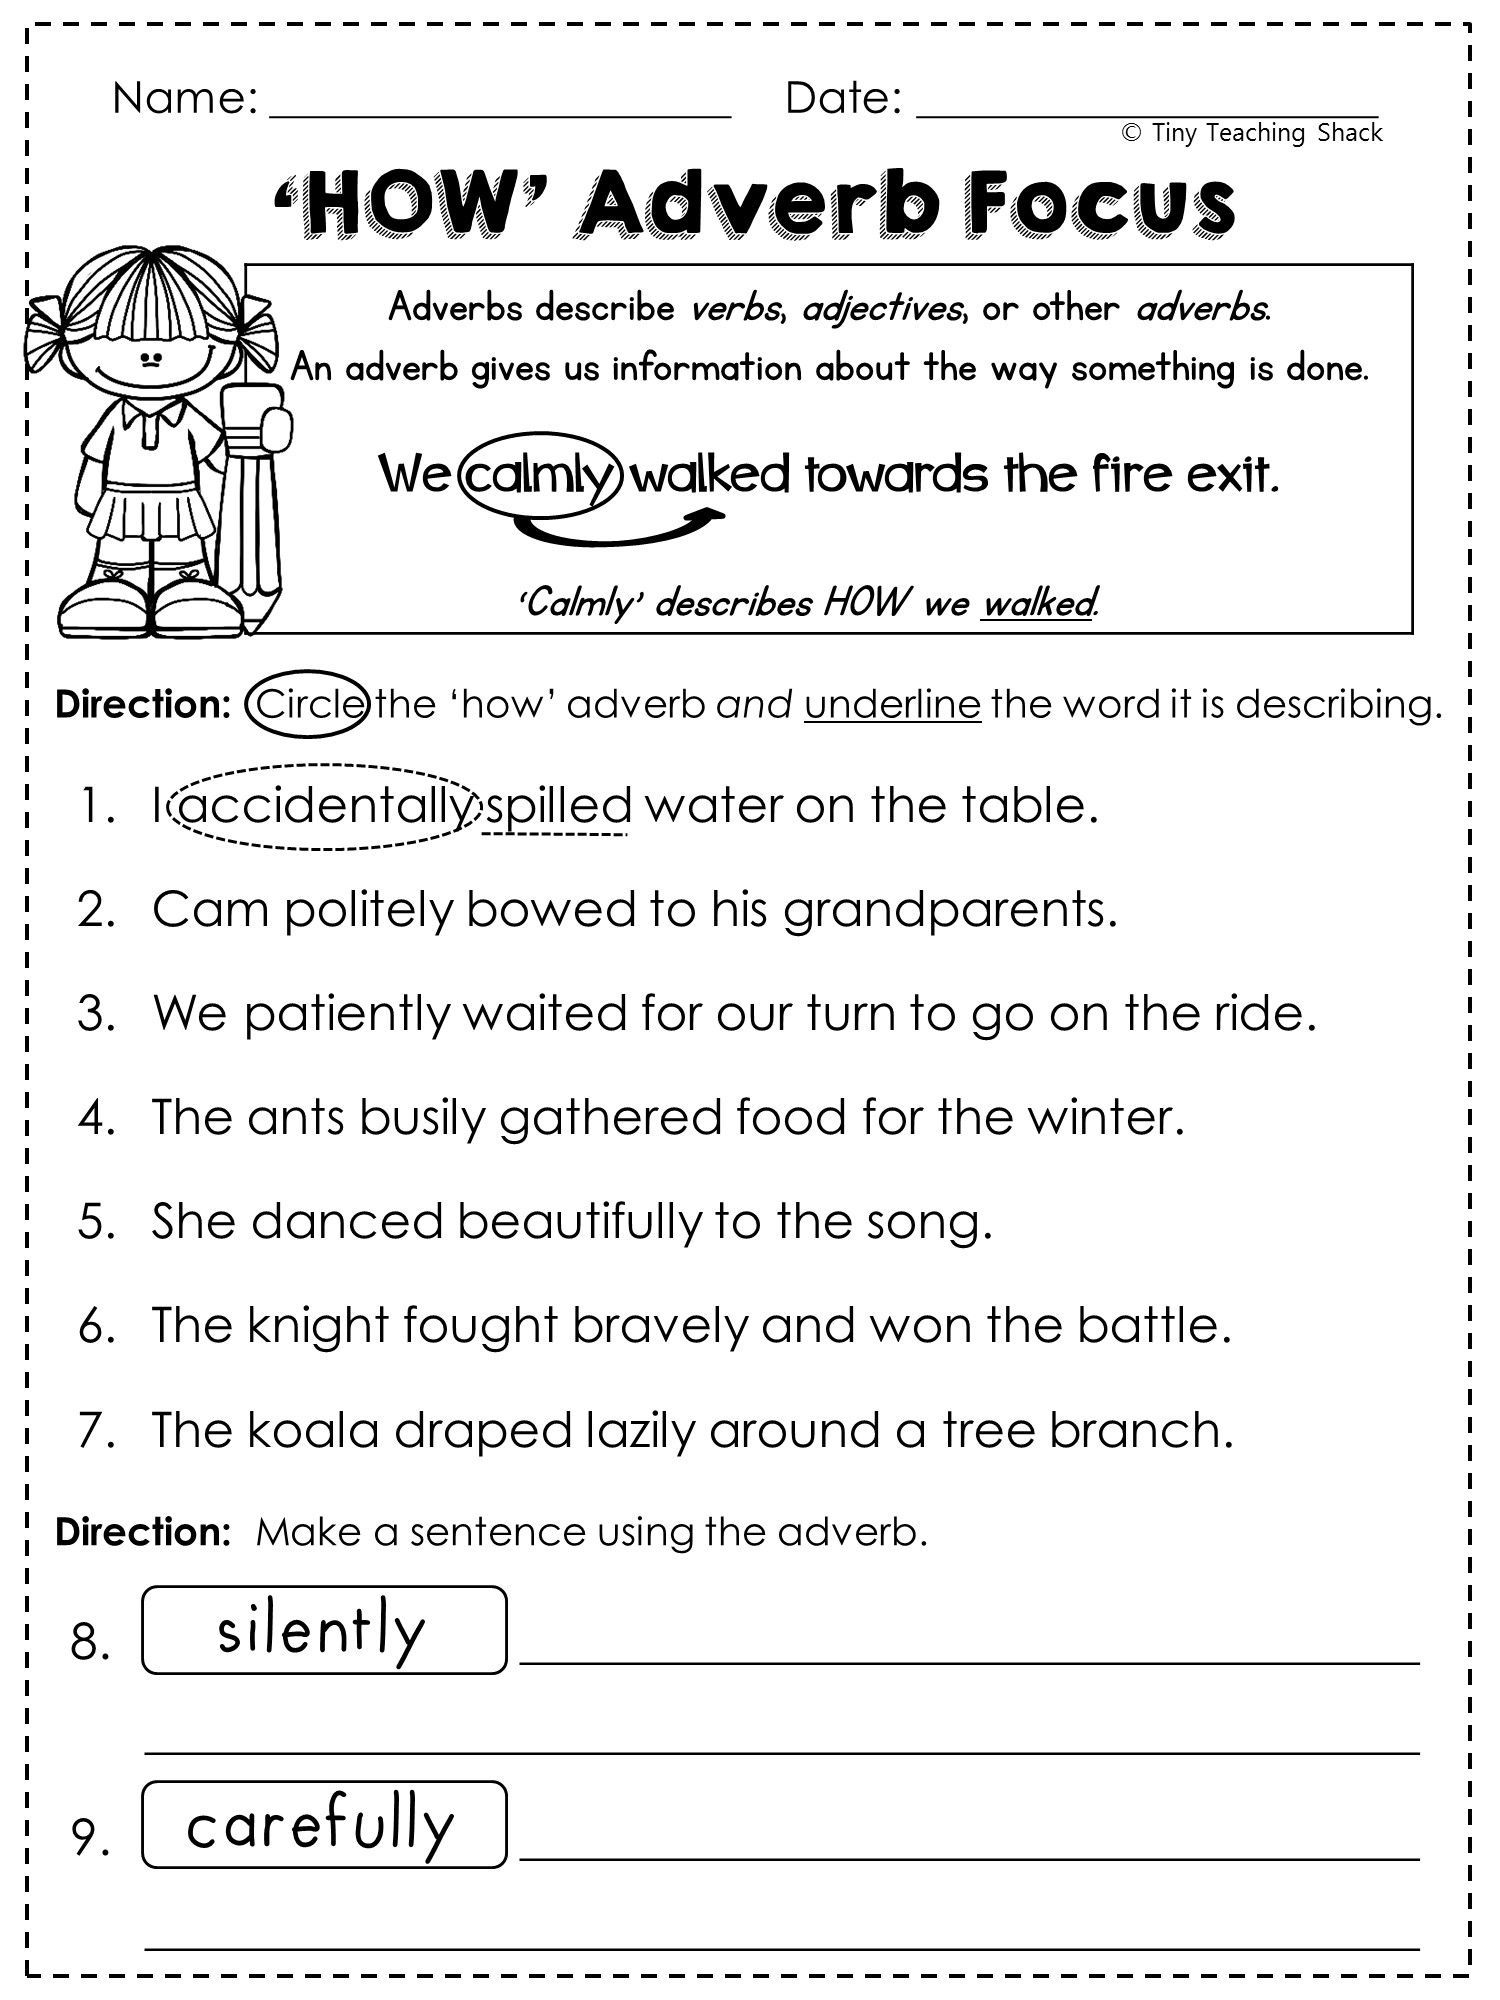 hight resolution of 8 Best 4th Grade English Worksheets Adjectives images on Best Worksheets  Collection